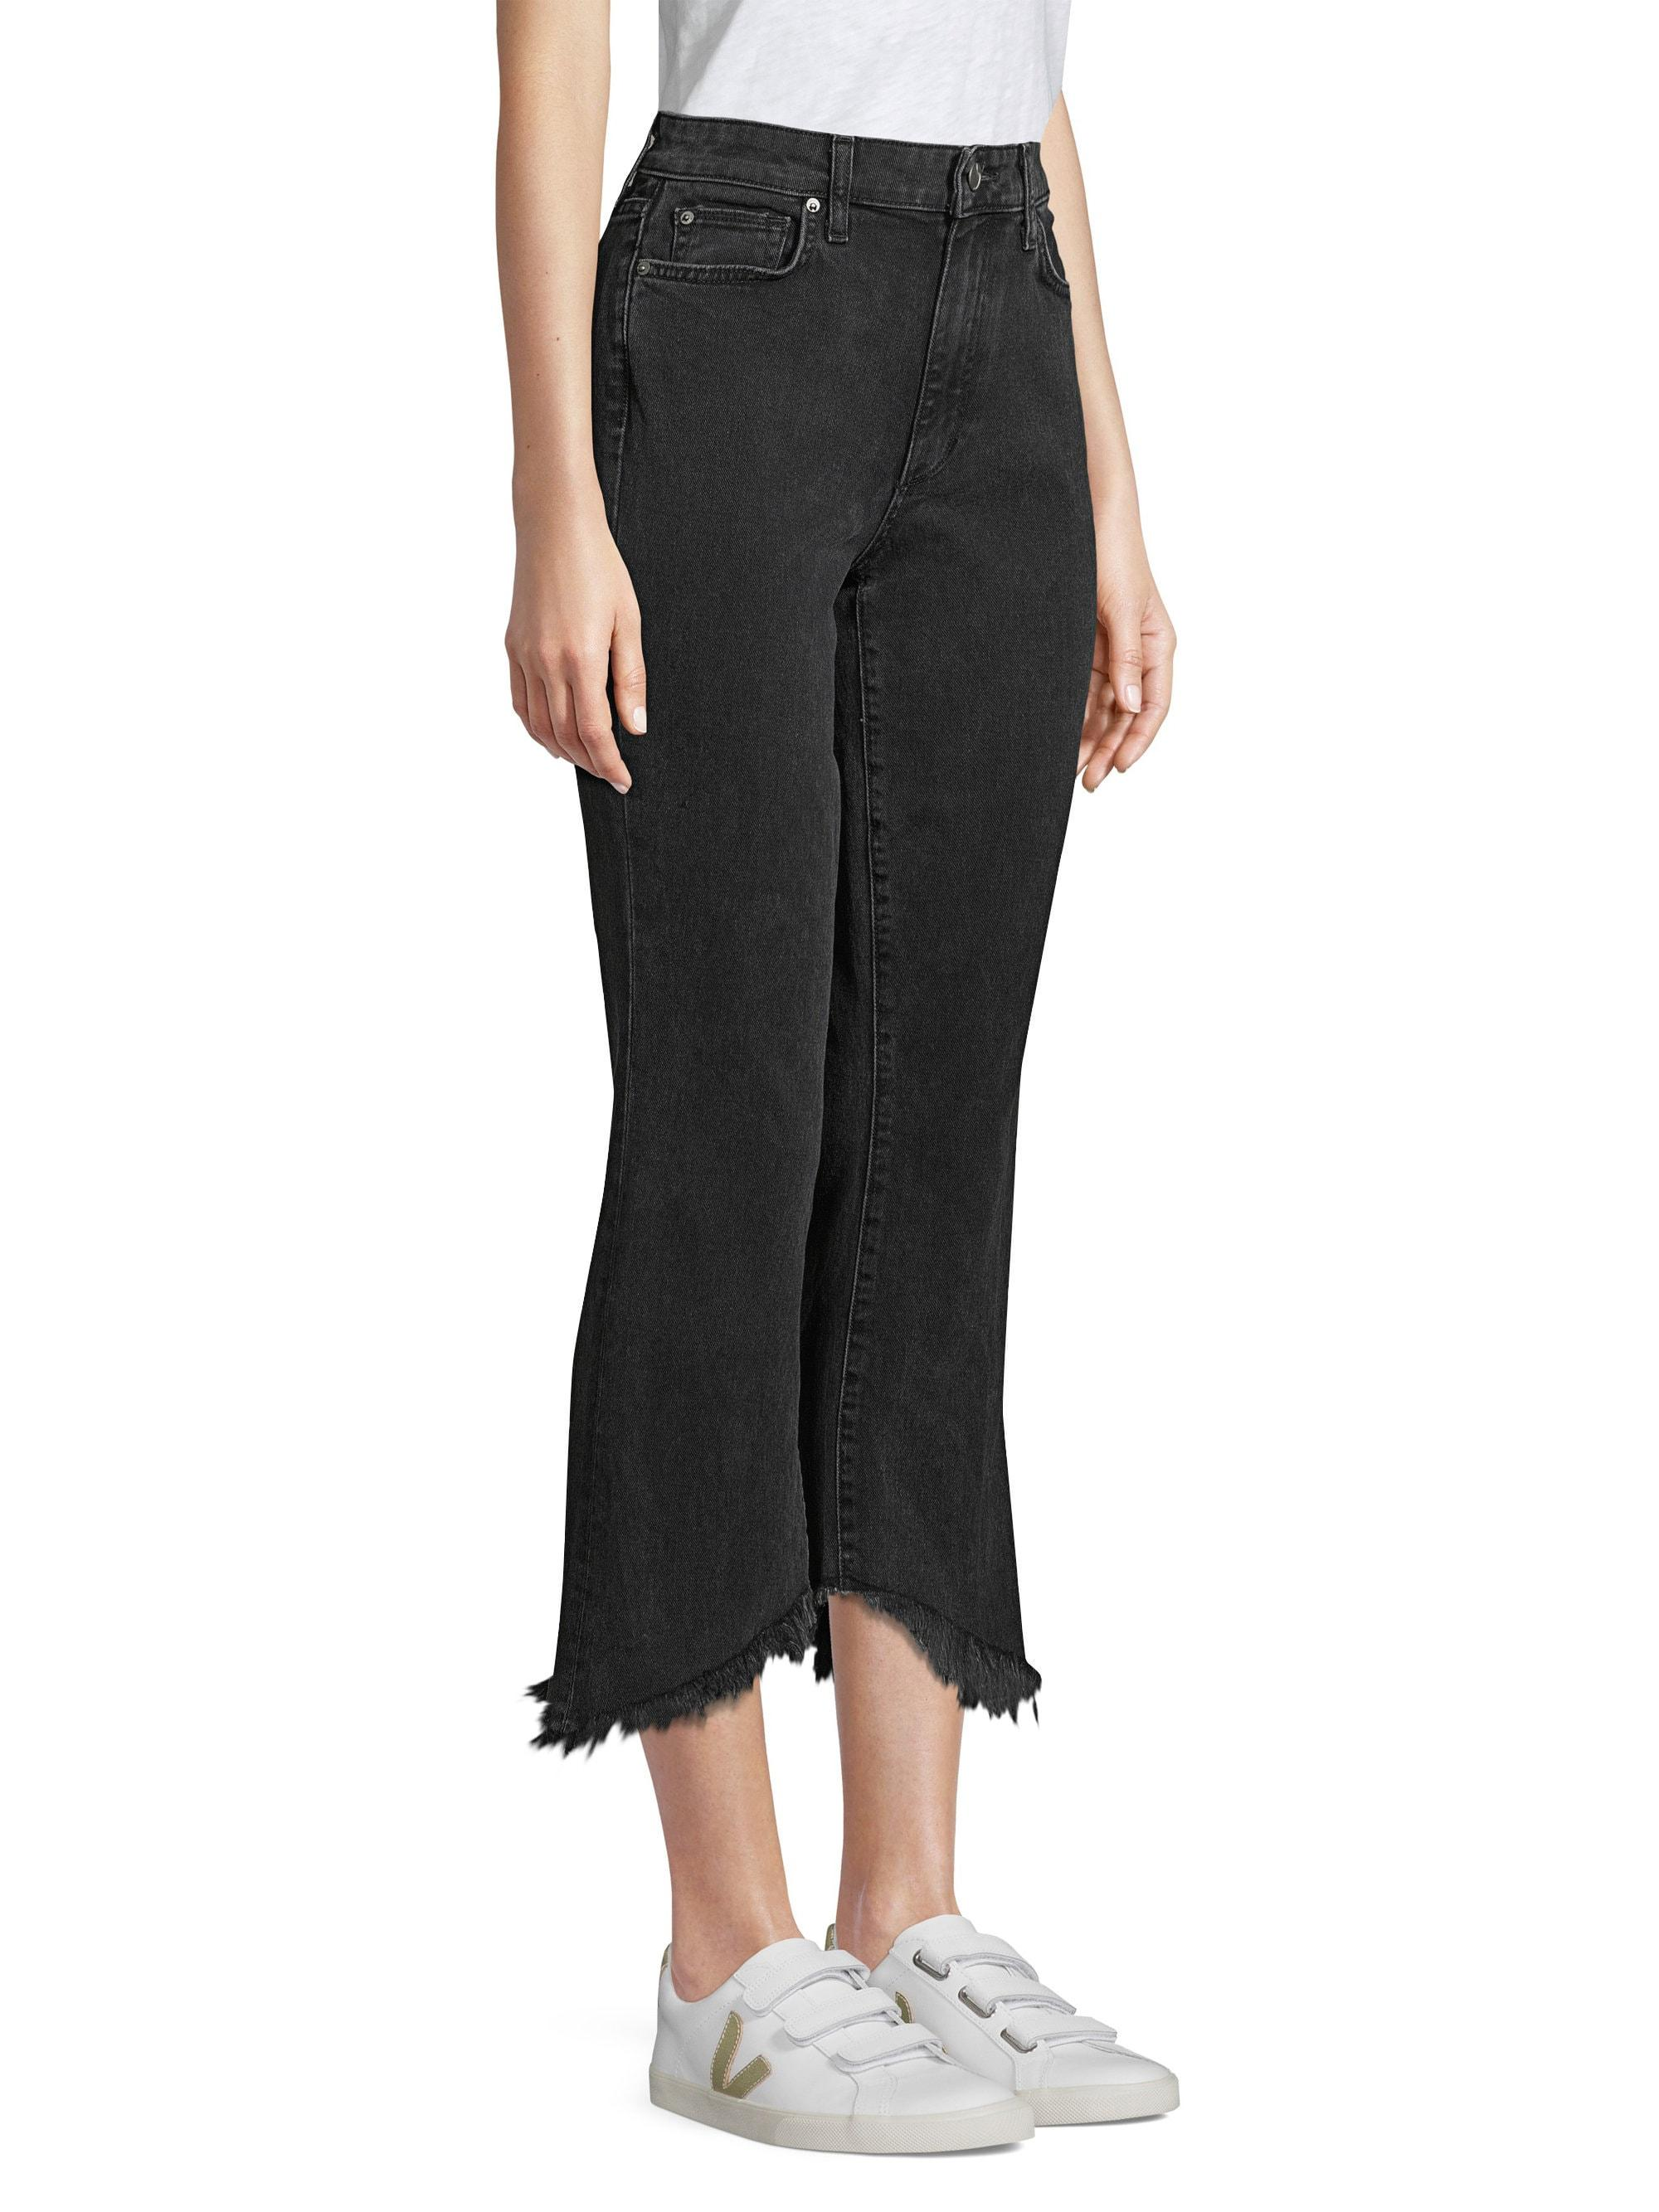 c488a889ed Lyst - Joe's Jeans Callie High-rise Cropped Bootcut Jeans in Black